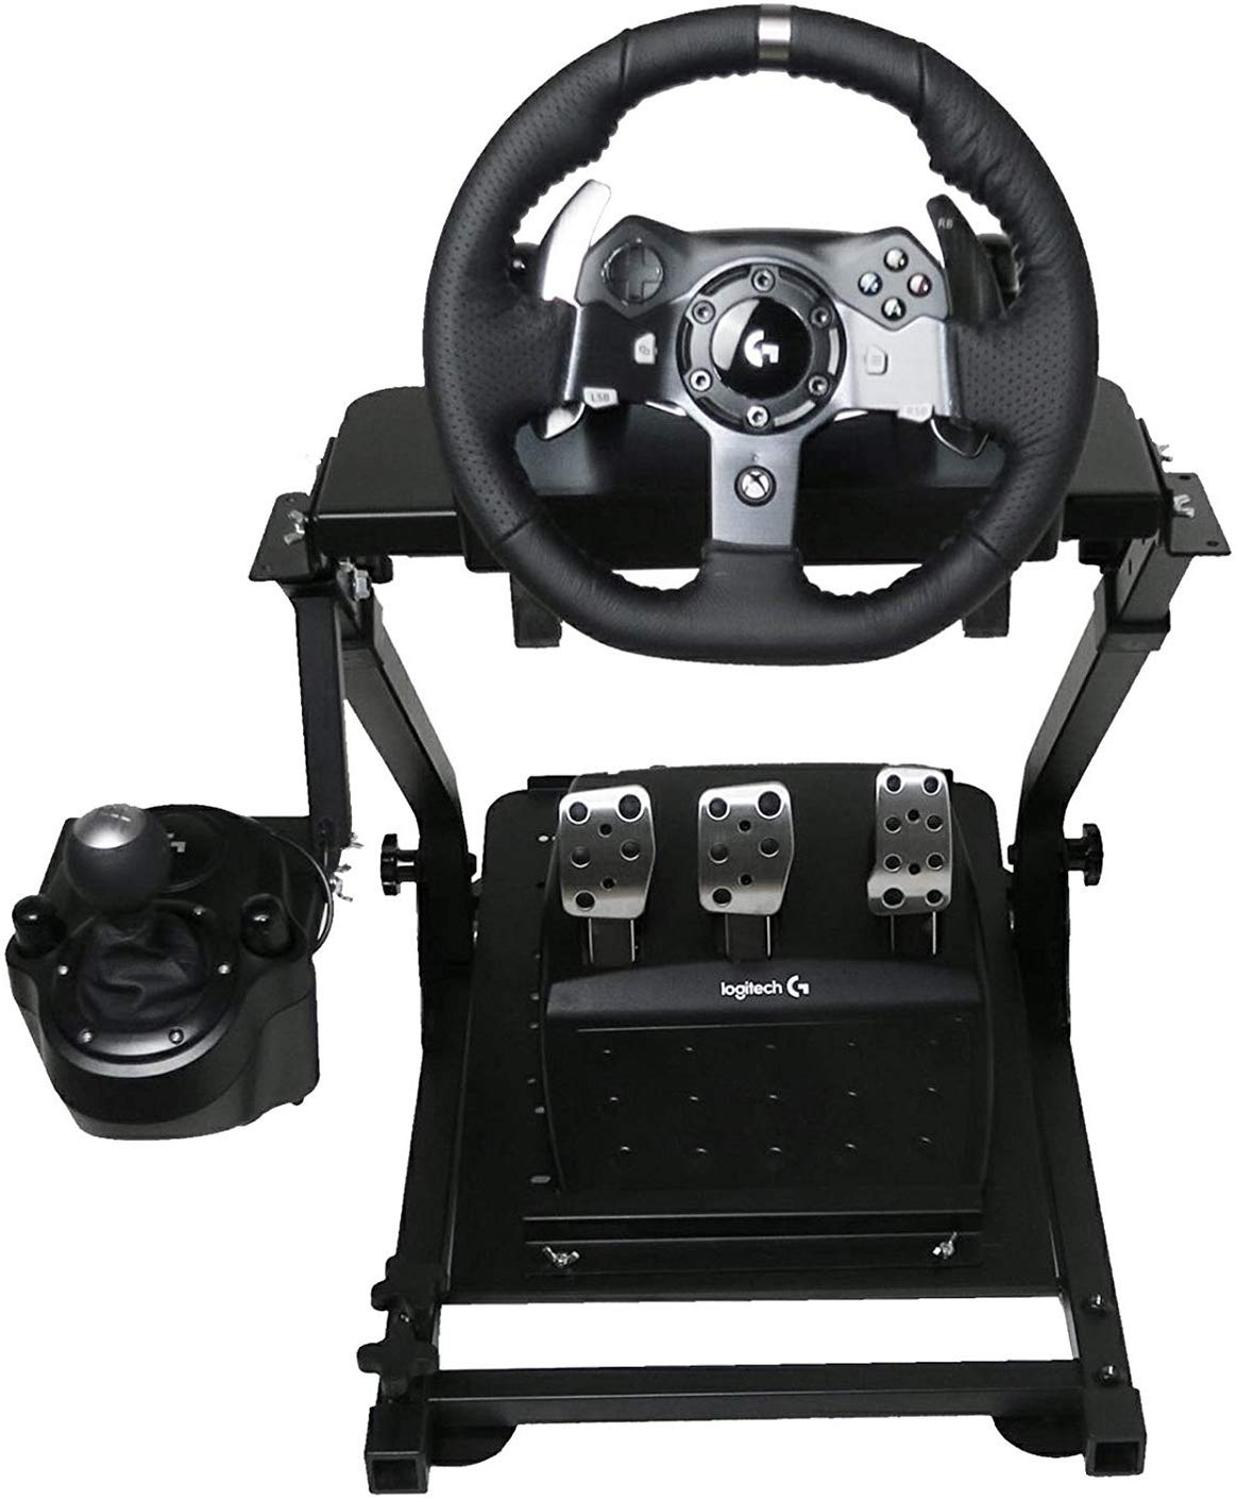 Career Race Steering Wheel Support For Logitech G25 G27G29 And G920 Folding Steering Logitech Wheel Stand  Compatible WithT300RS